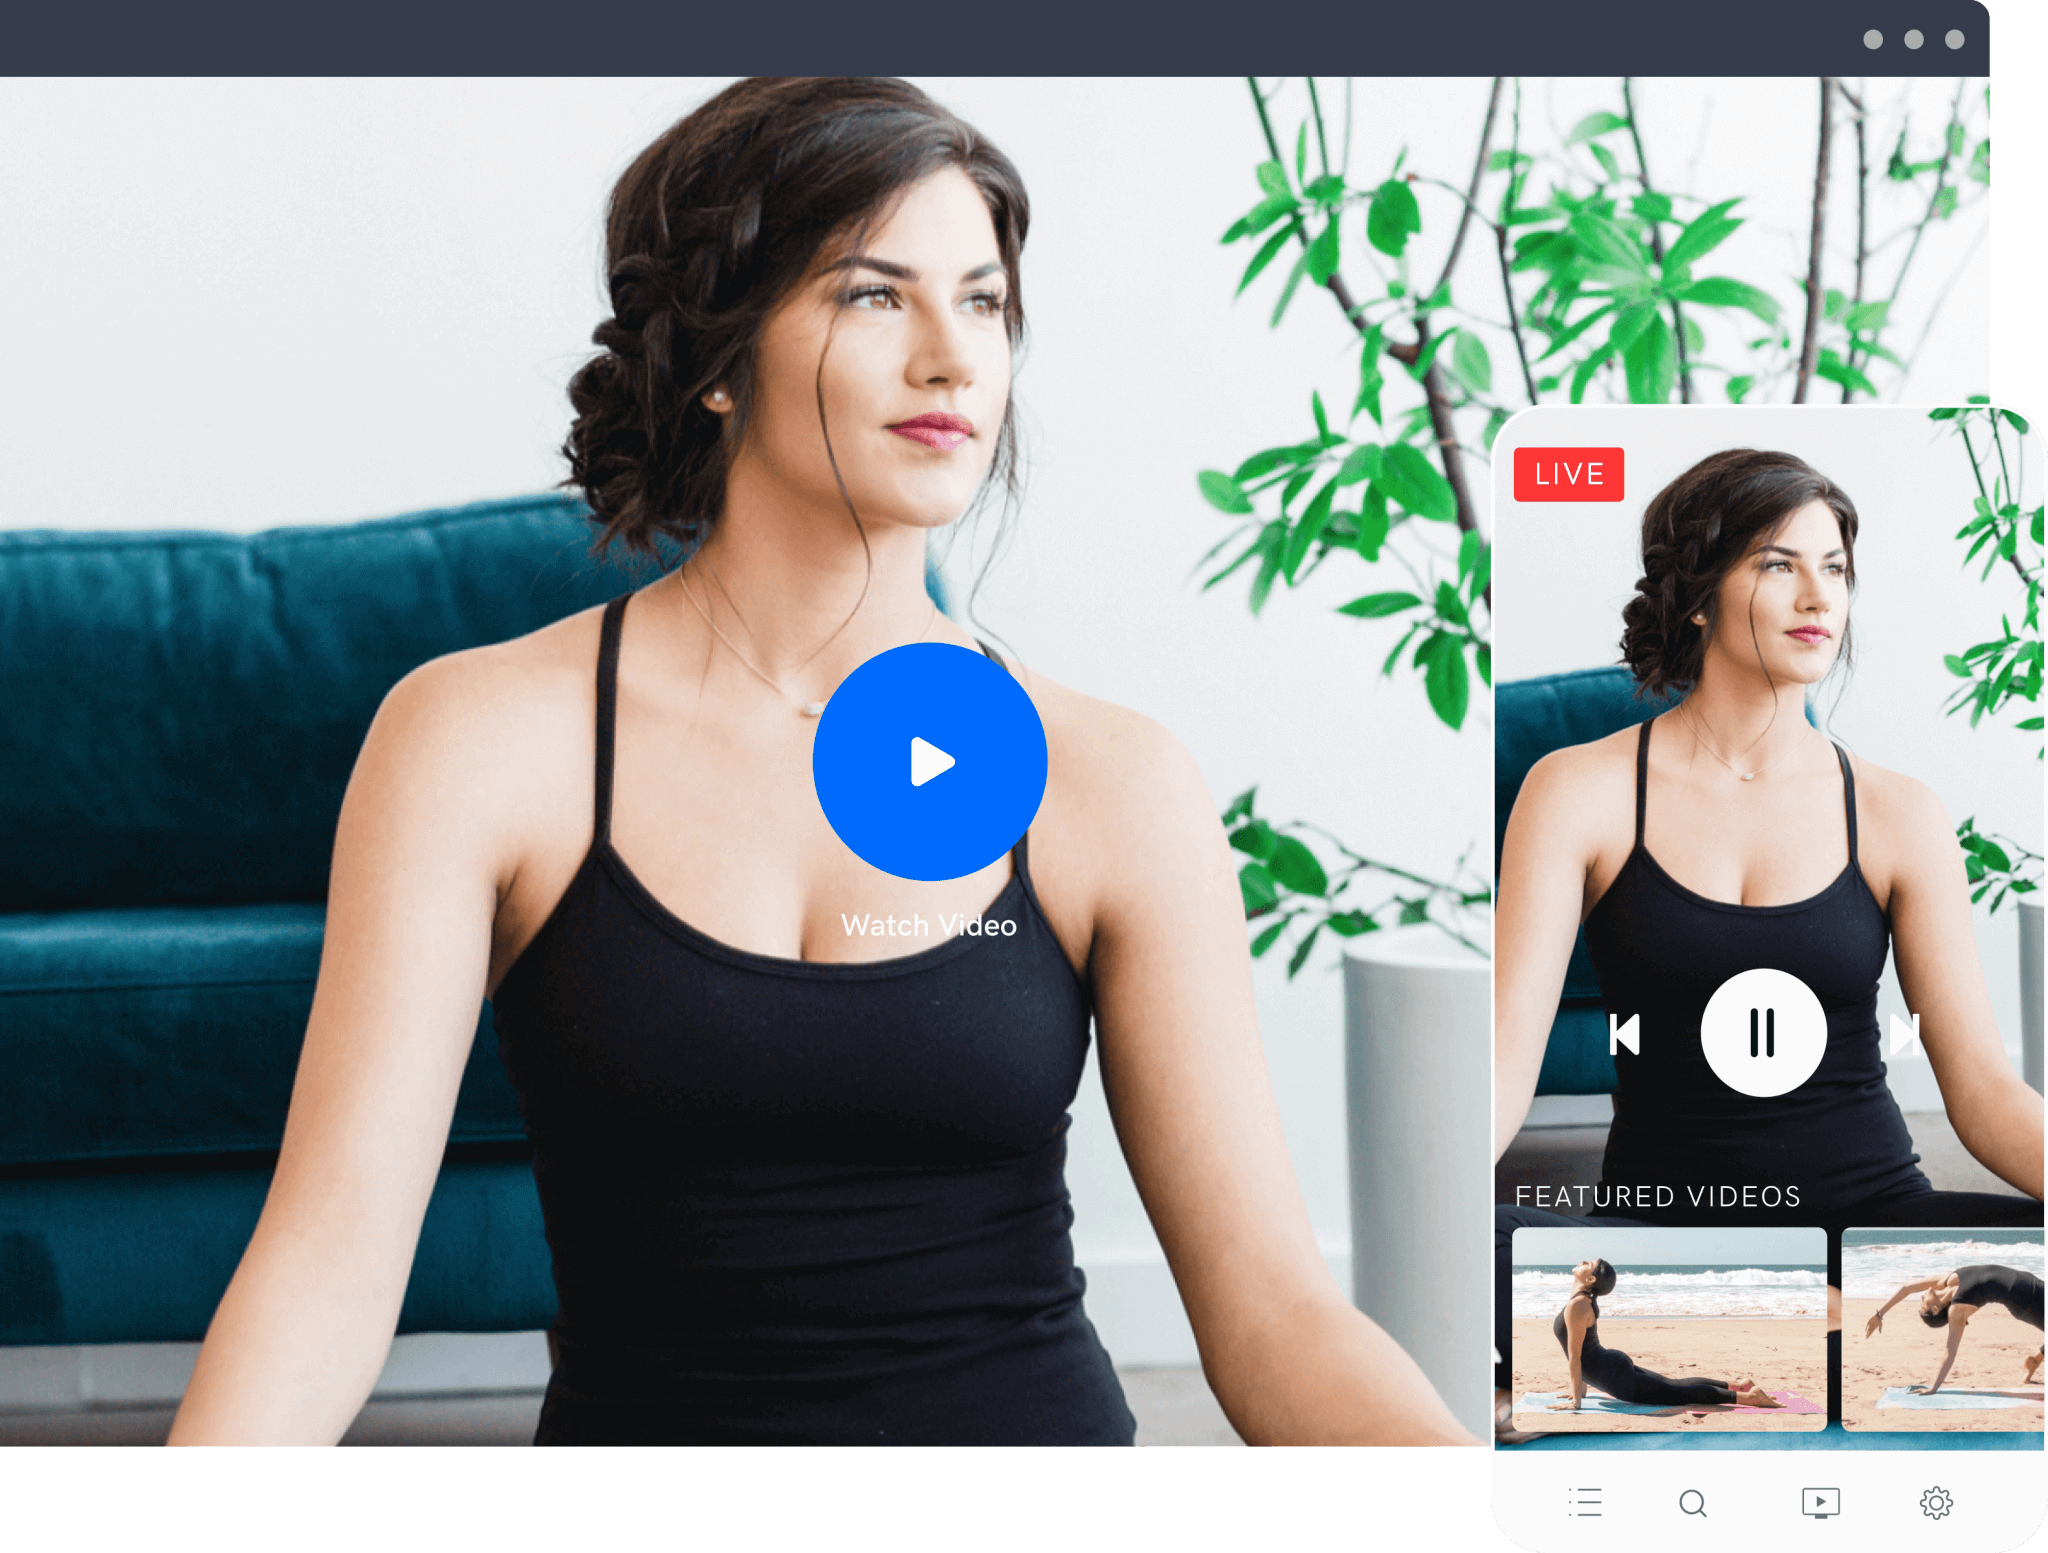 Sarah Beth Yoga's OTT service on Mobile and TV